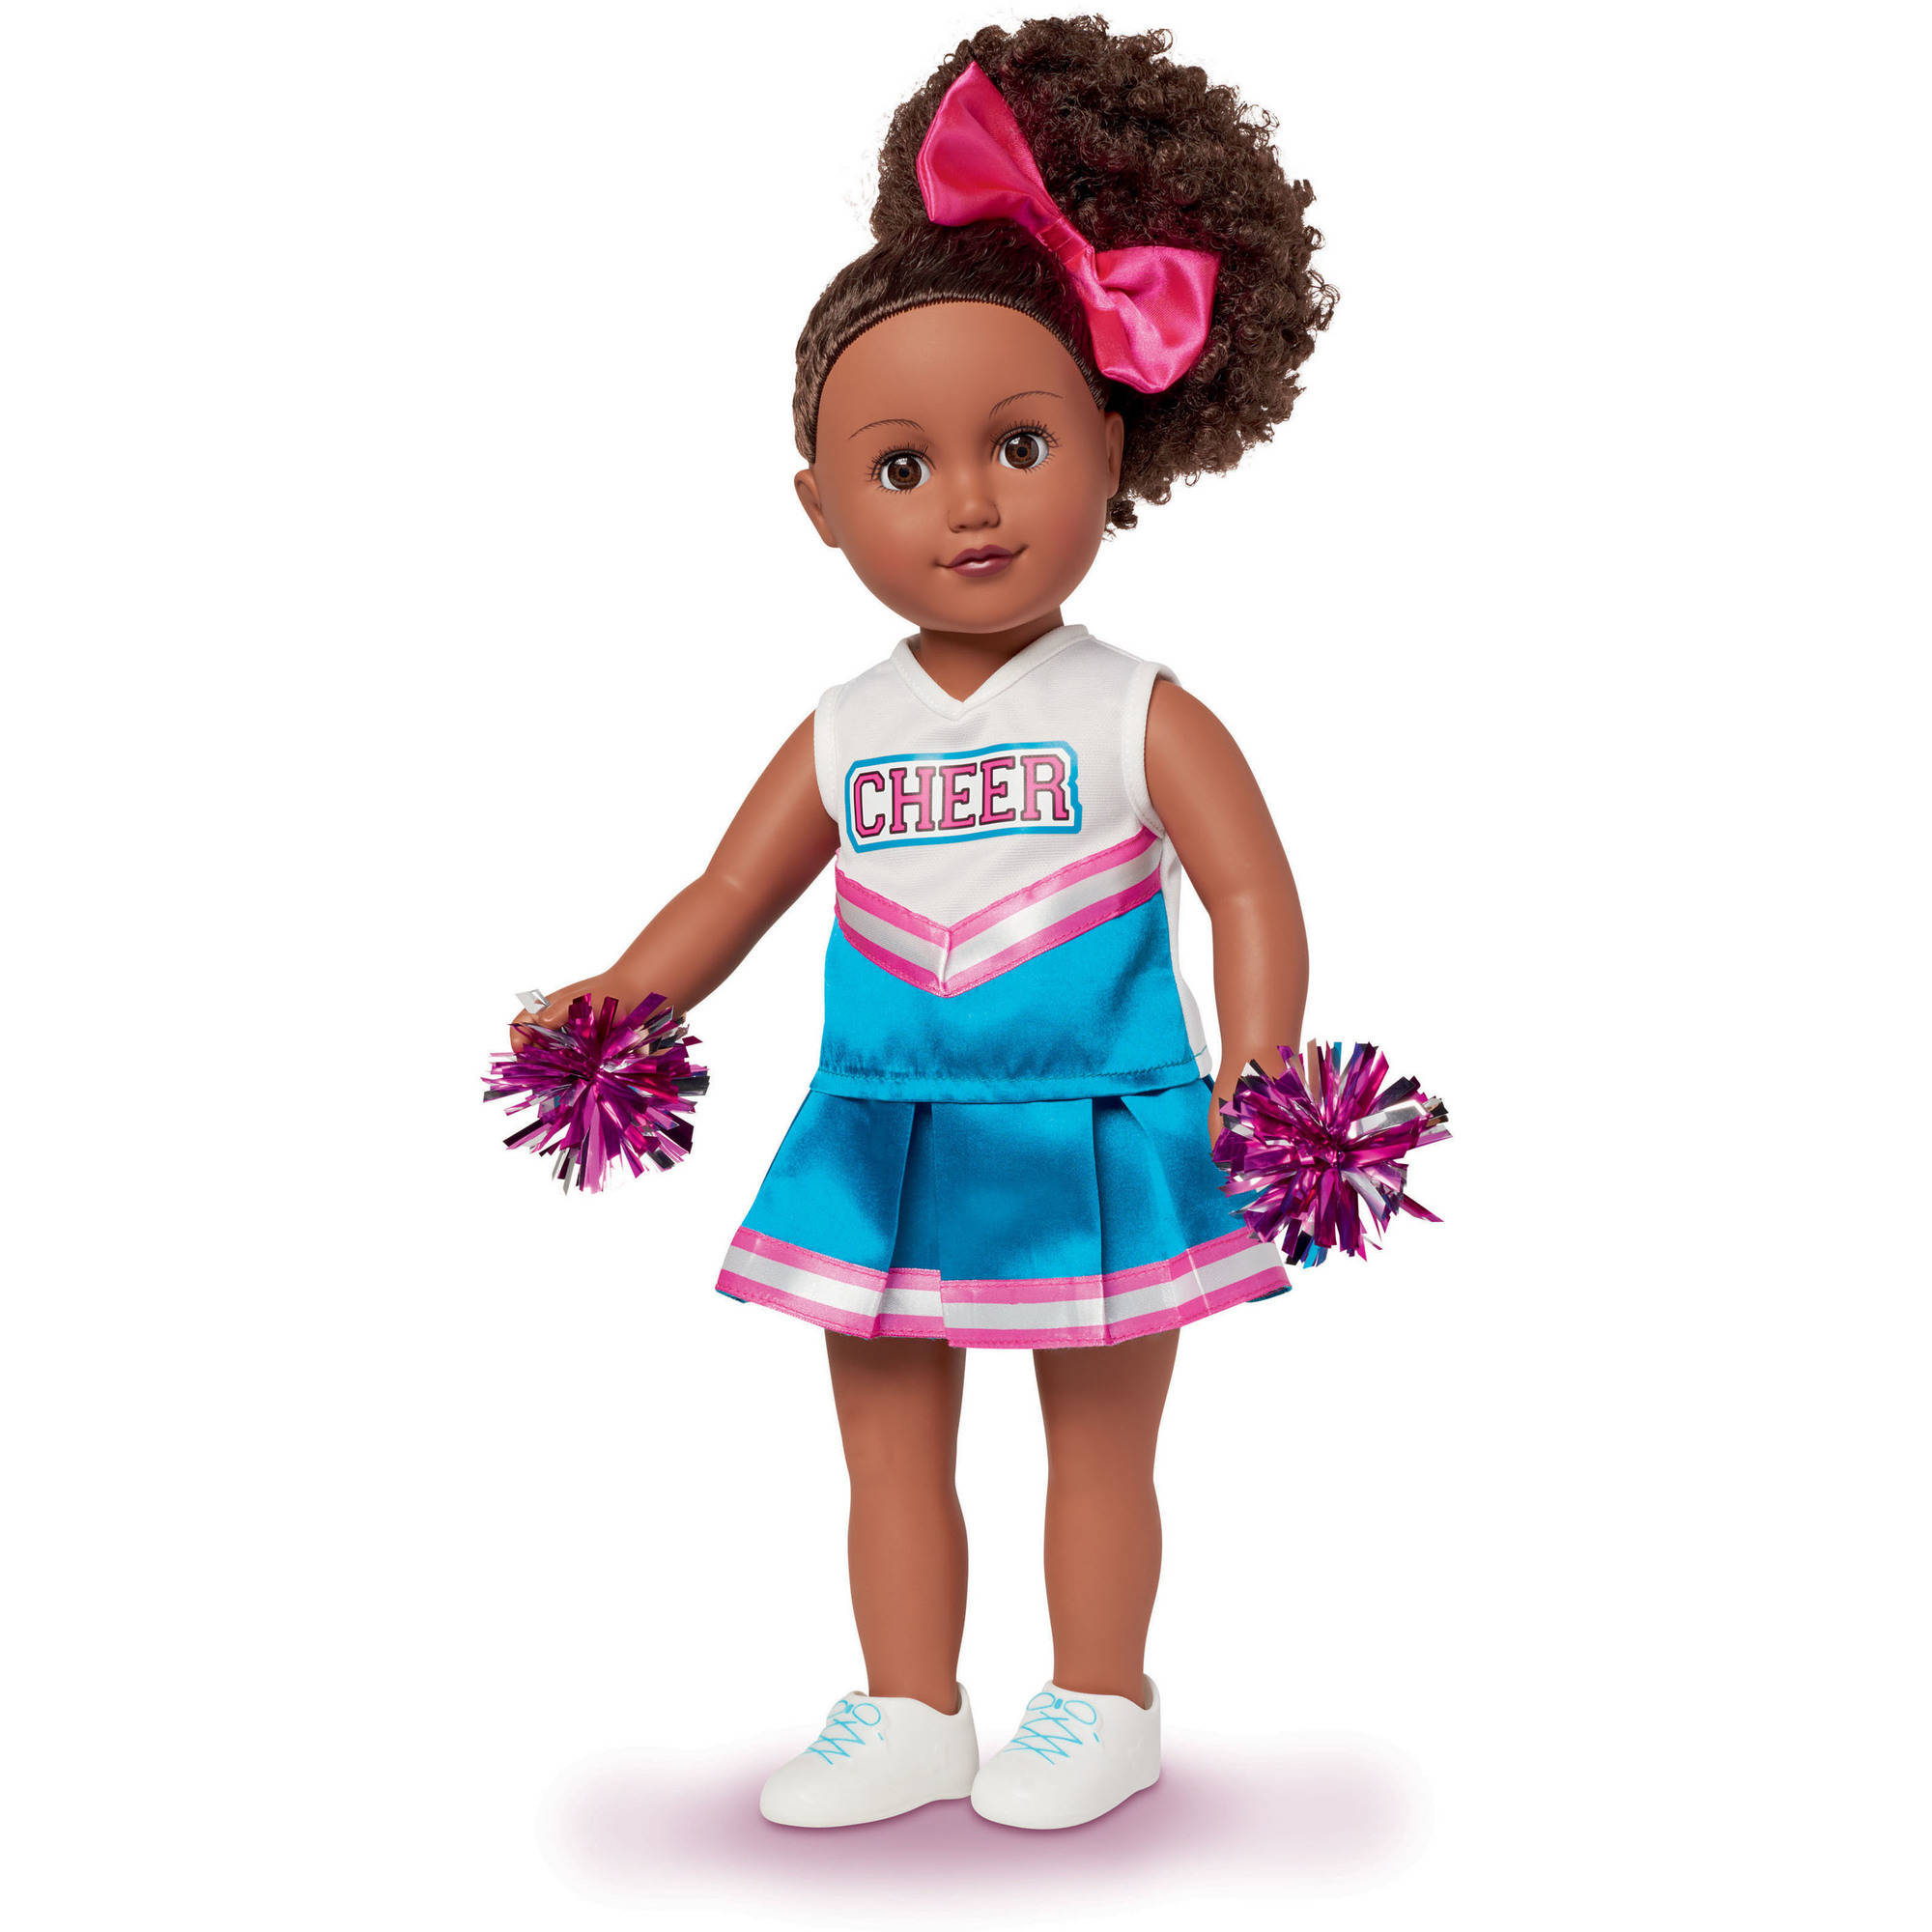 life sleepover host doll african american